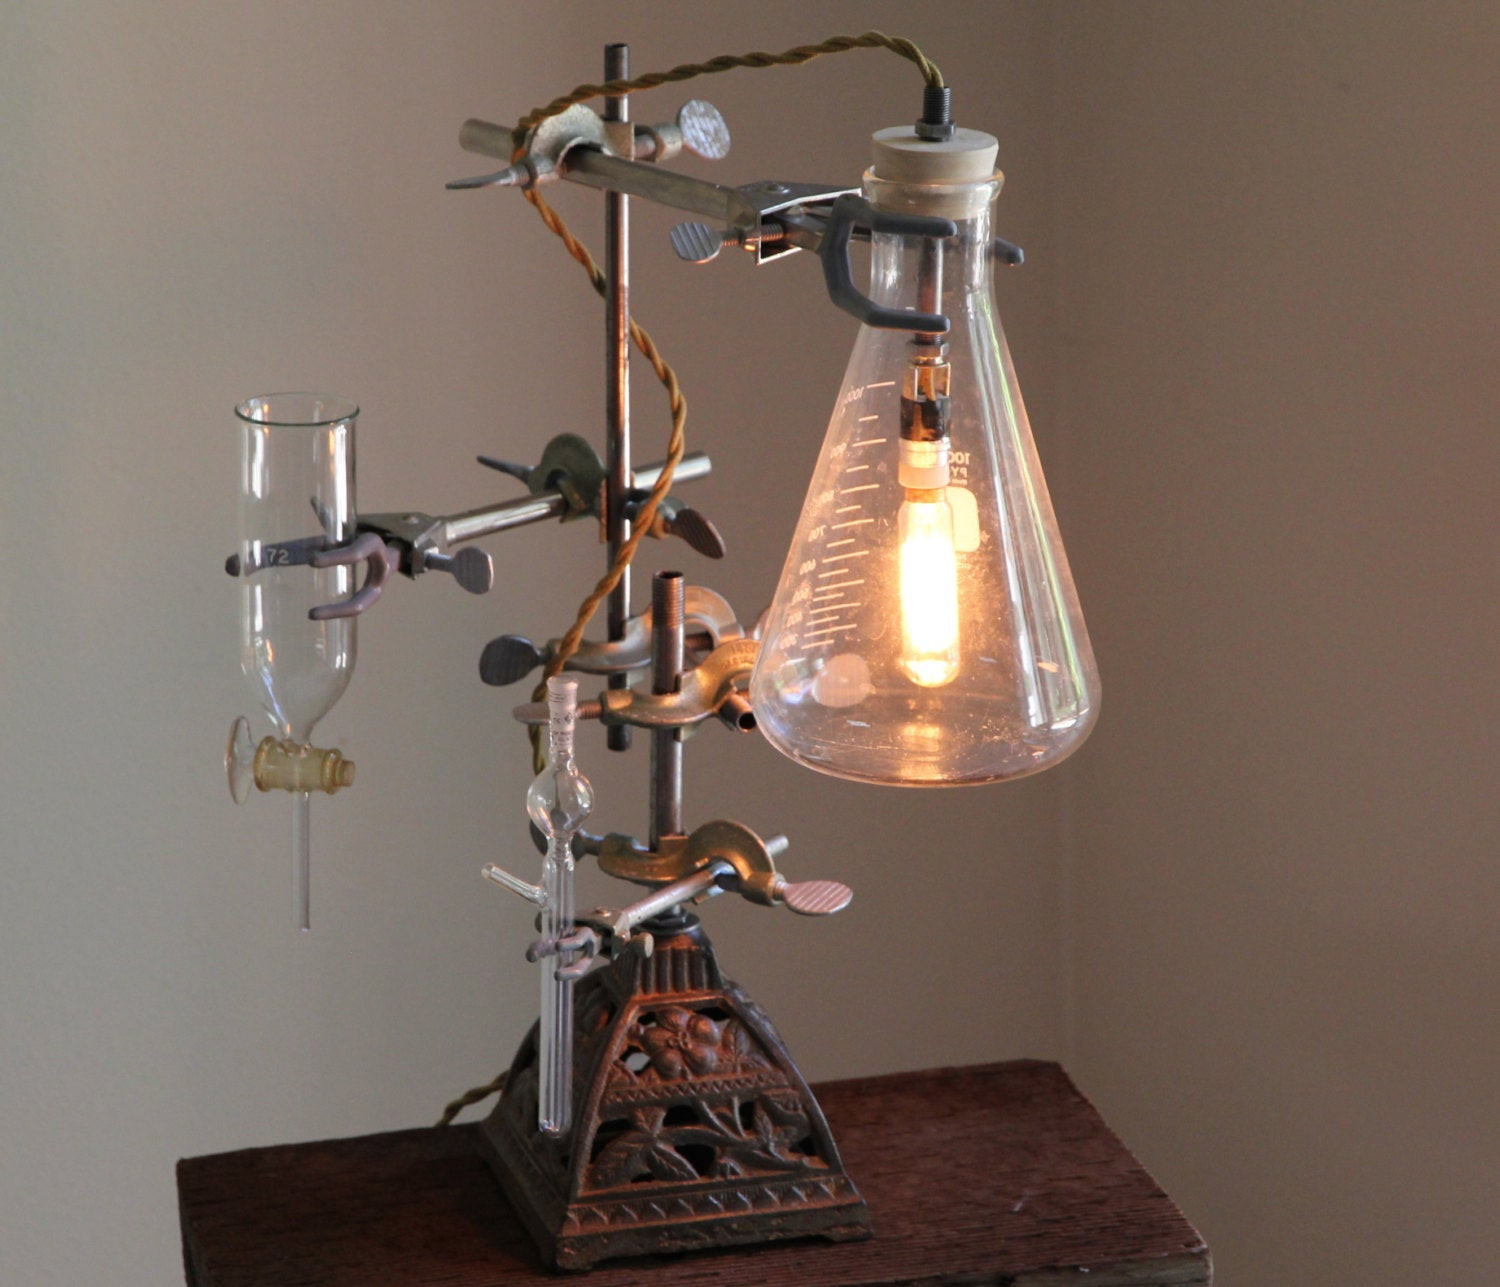 Best ideas about Steampunk Desk Lamp . Save or Pin Industrial desk lamp steampunk flower vase lighting antique Now.